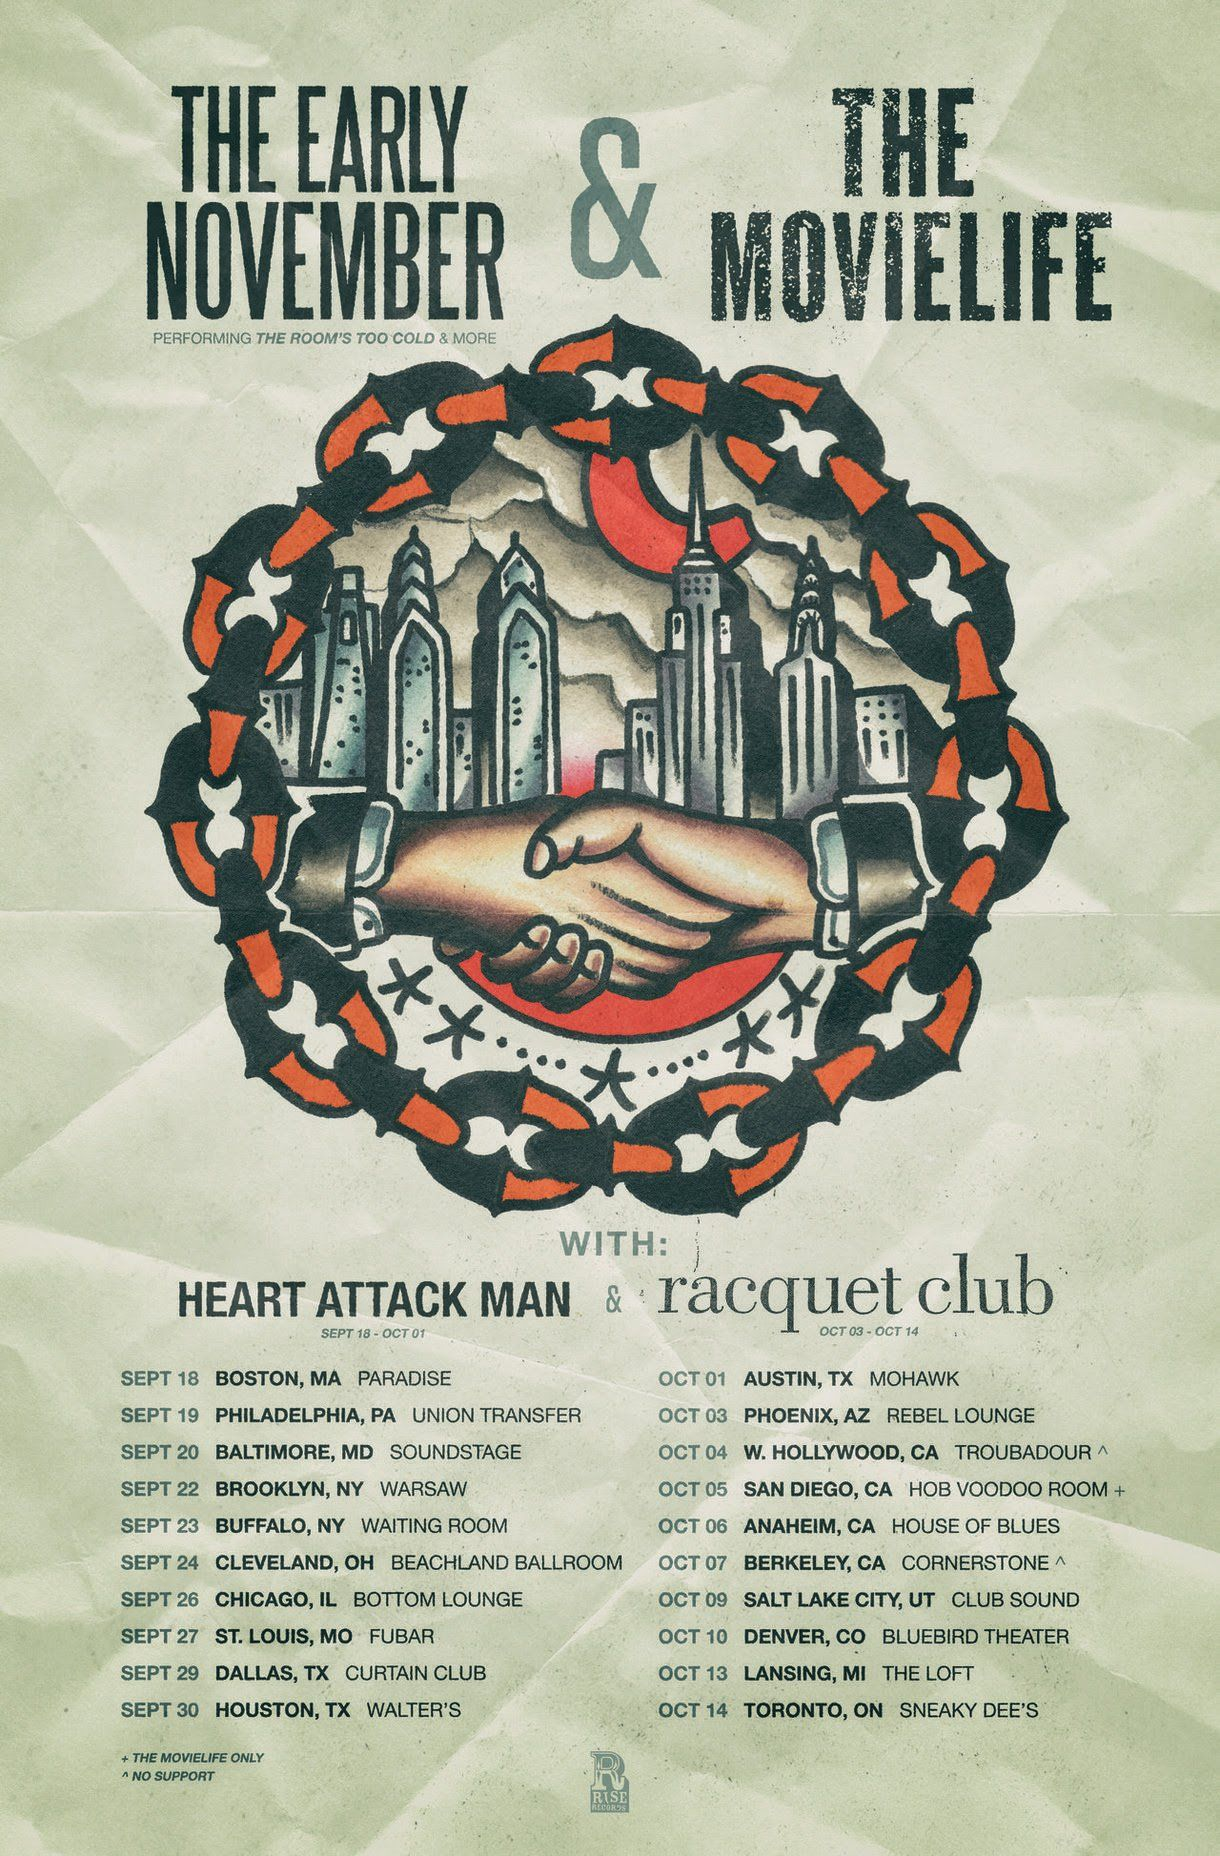 The Movielife And The Early November Announce Fall Co Headlining